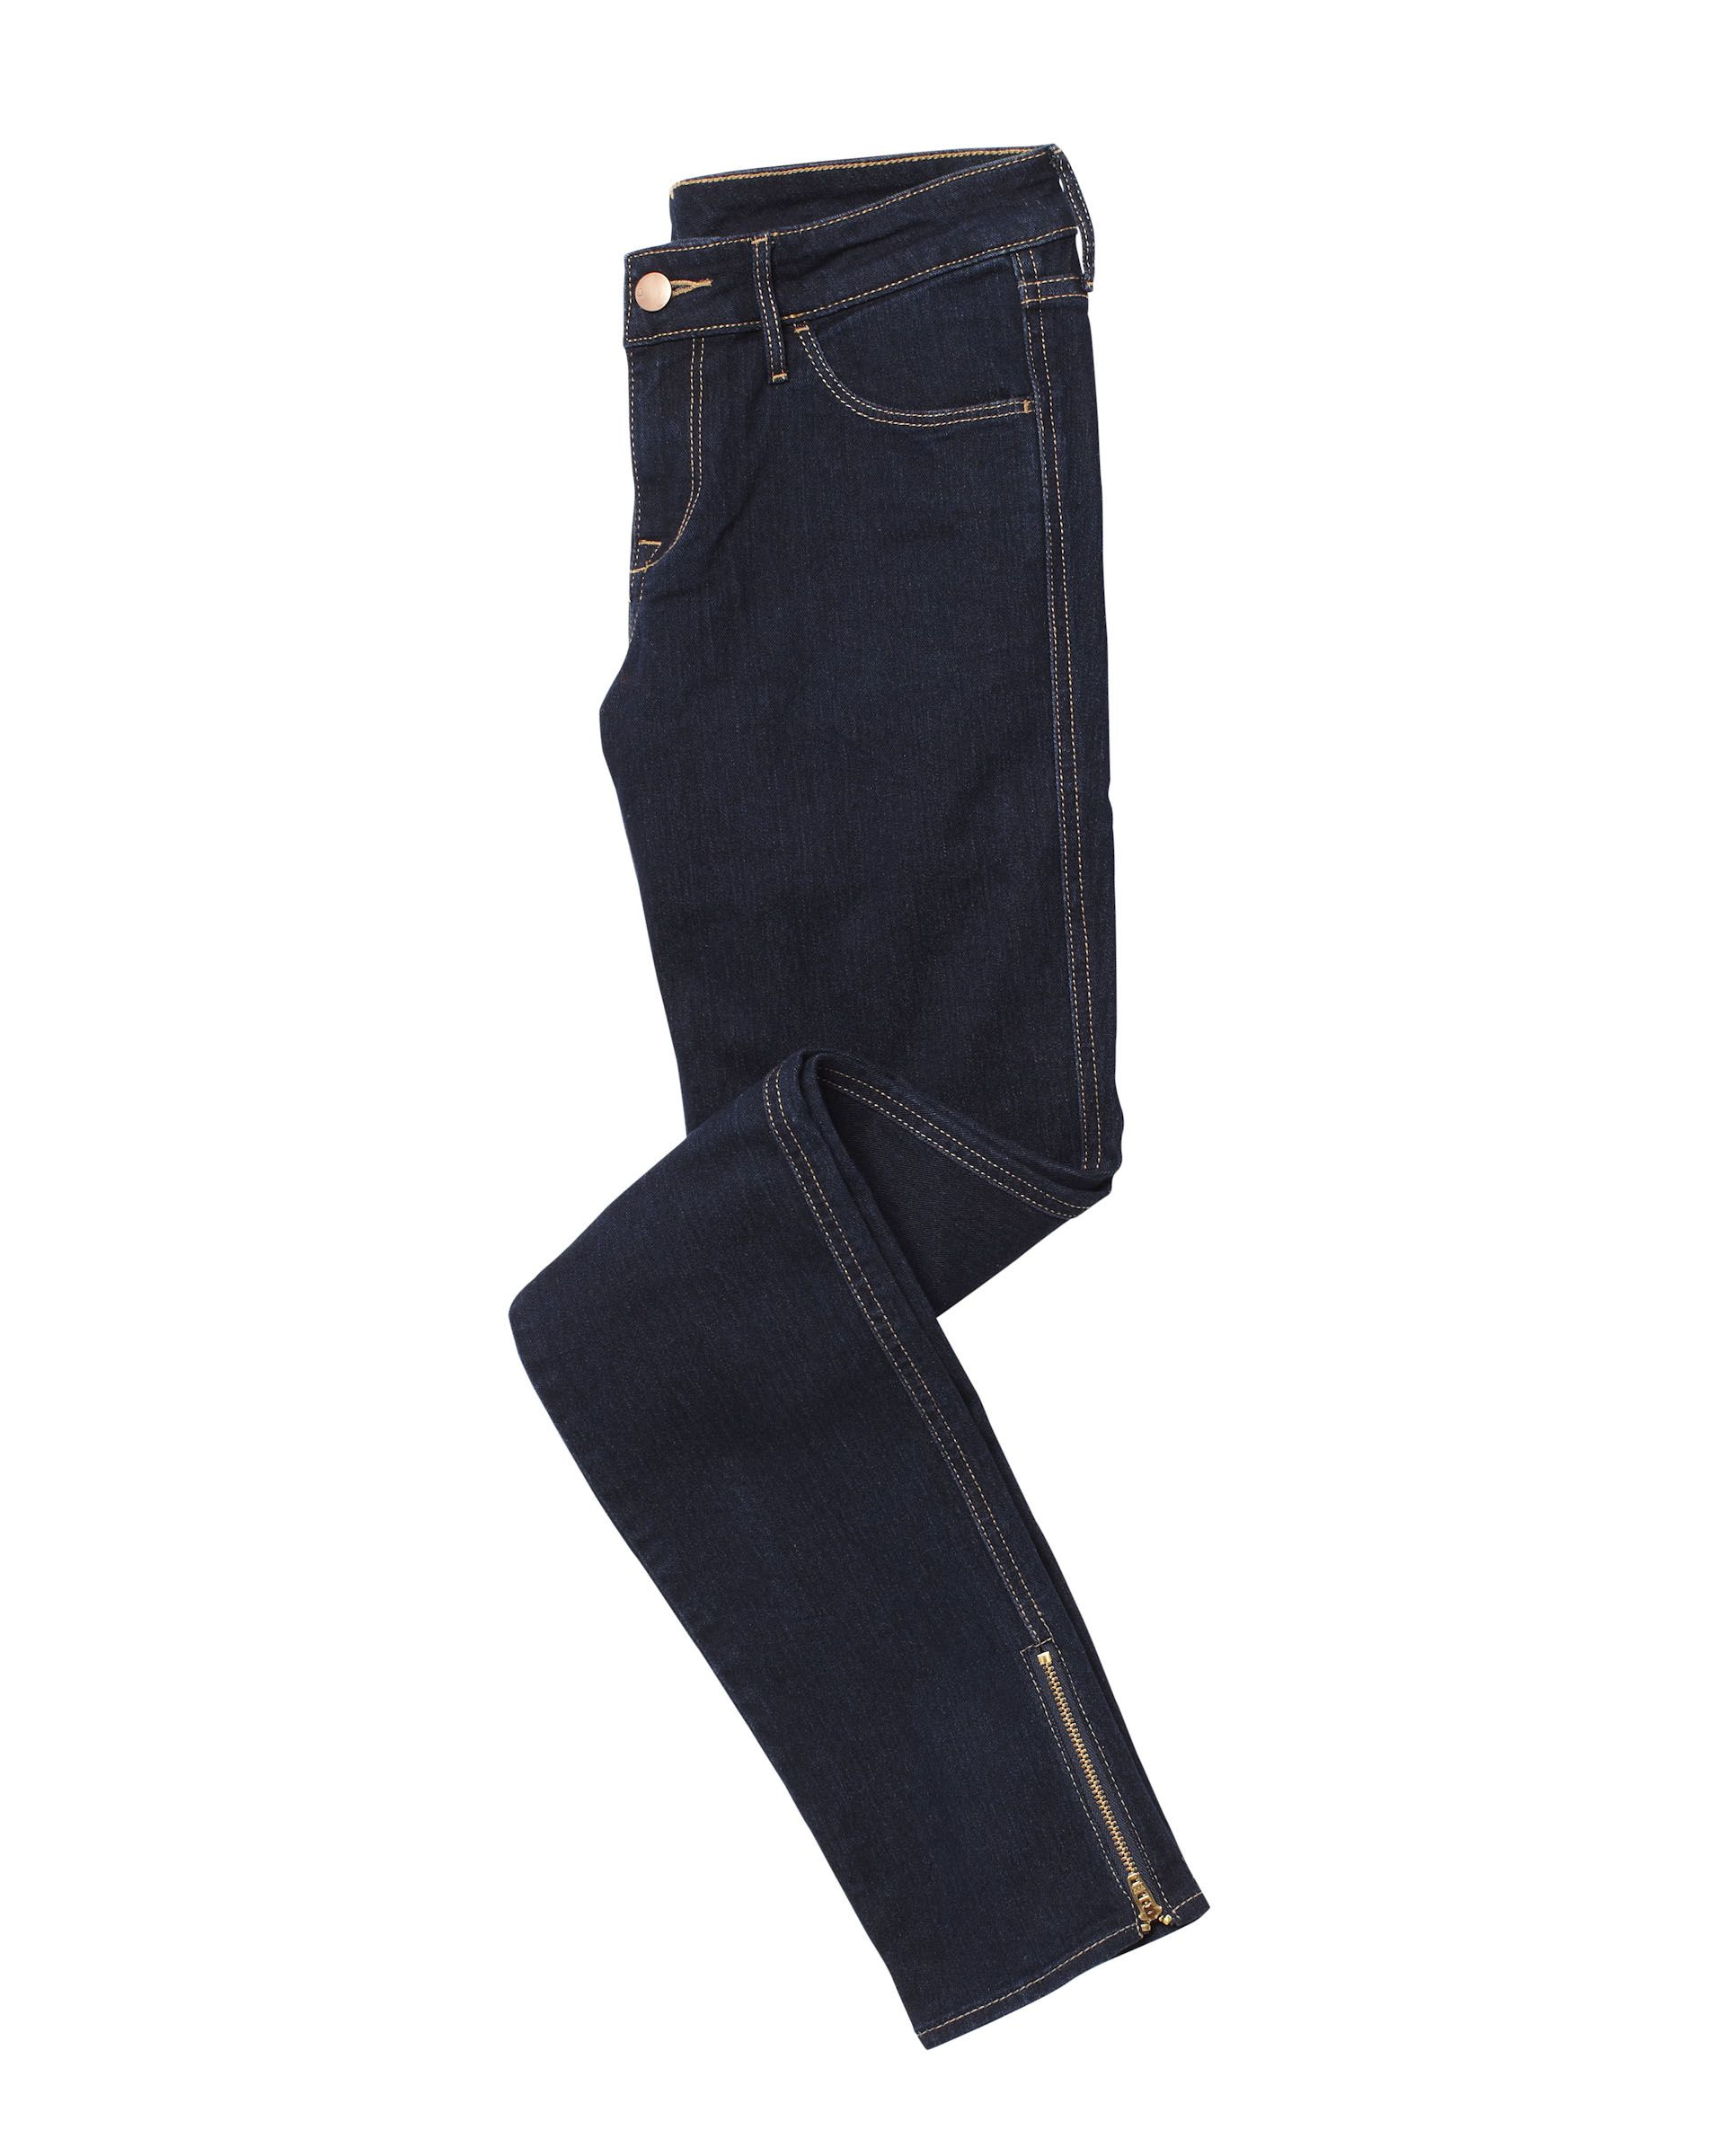 update your jeans